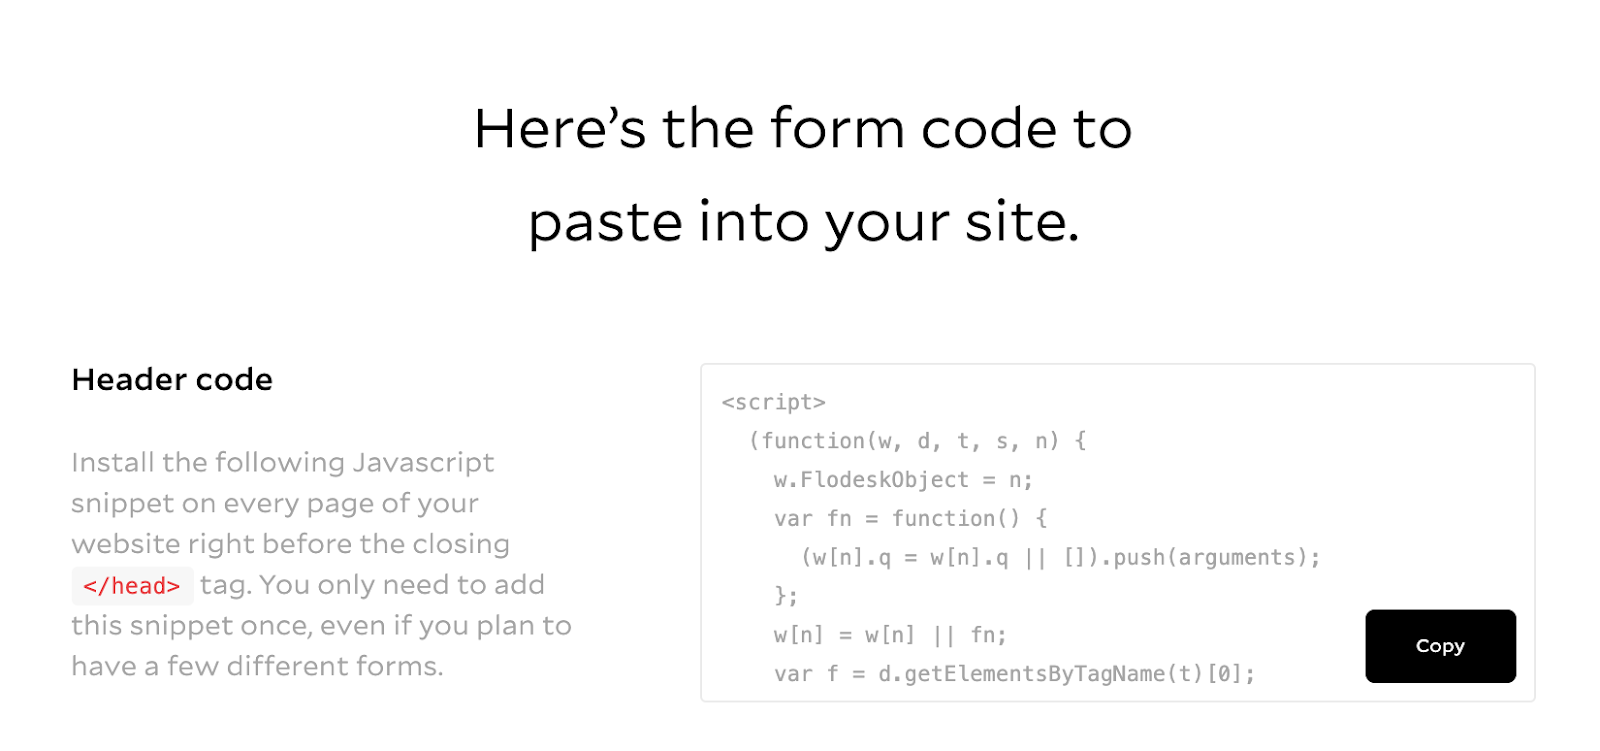 Here's the form code to paste into your site, header code instructions